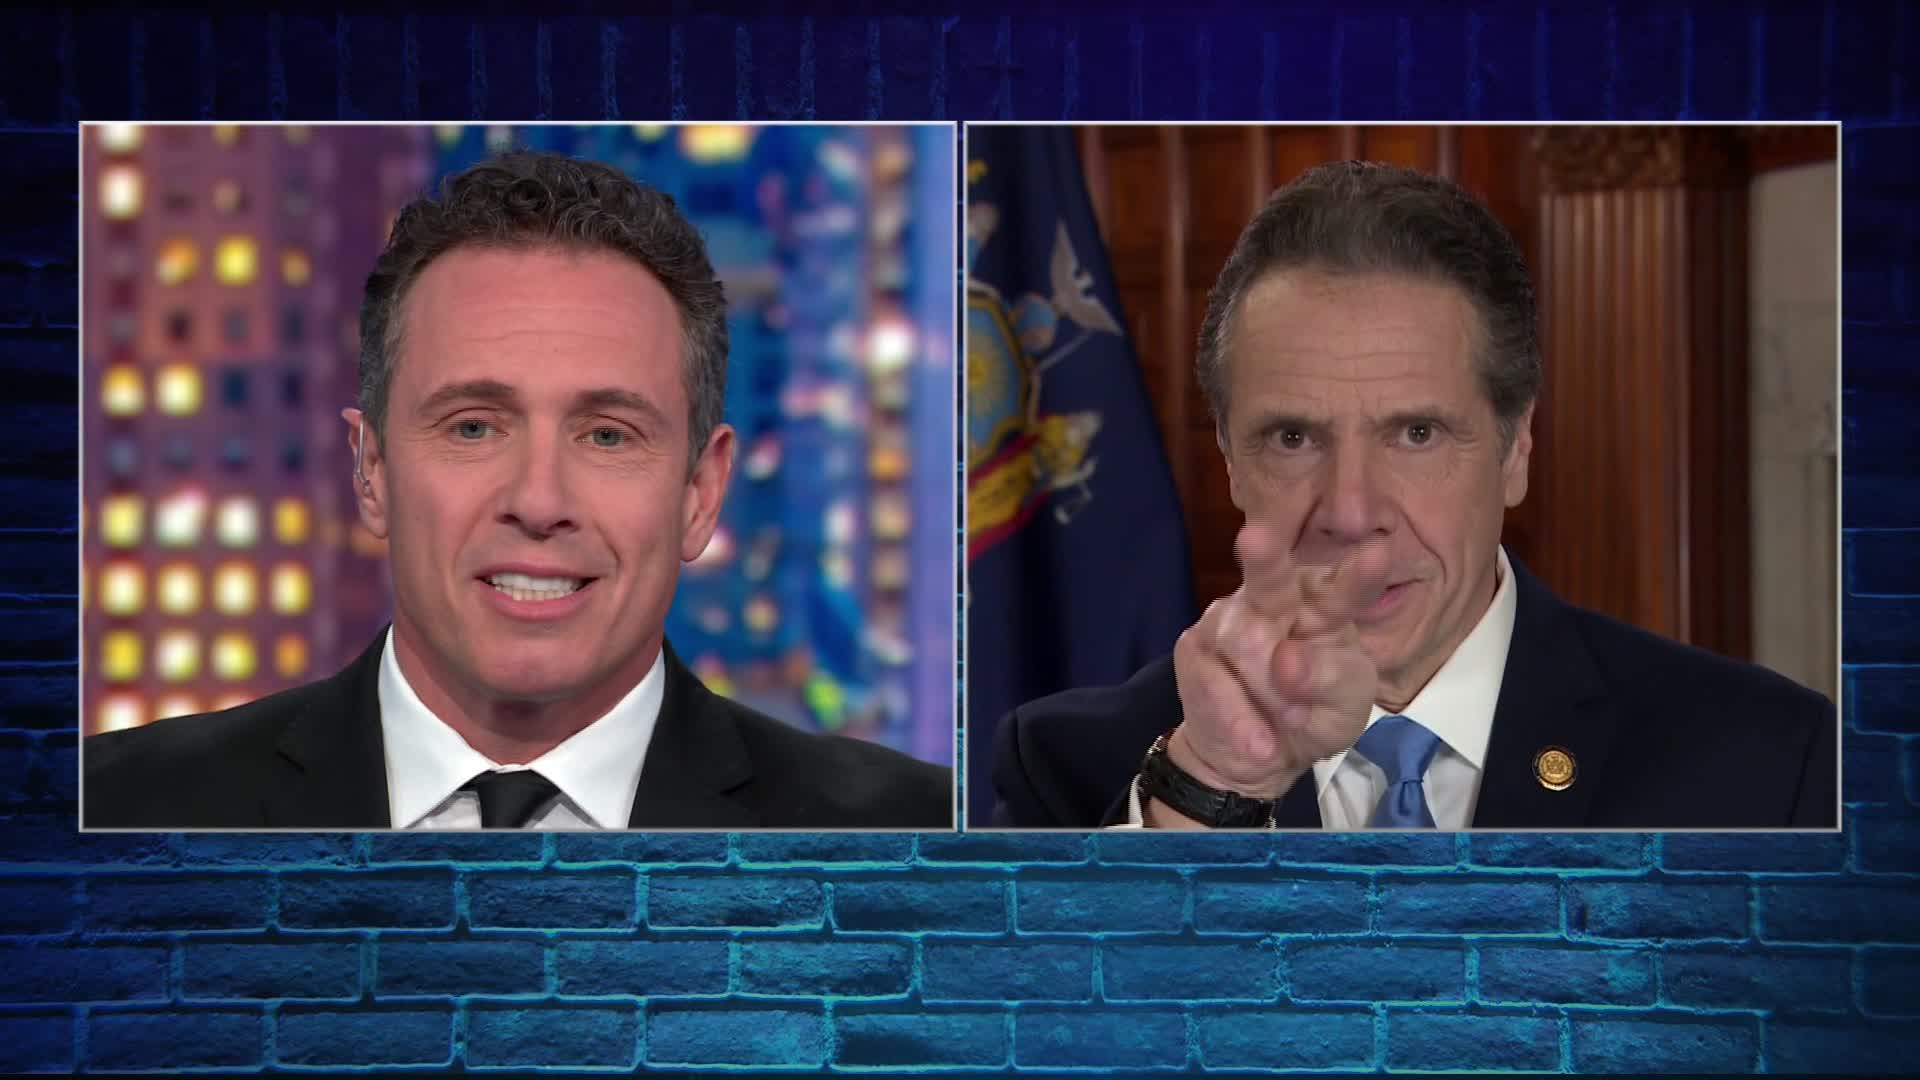 Chris Cuomo jokes with brother about mom's favorite - CNN Video